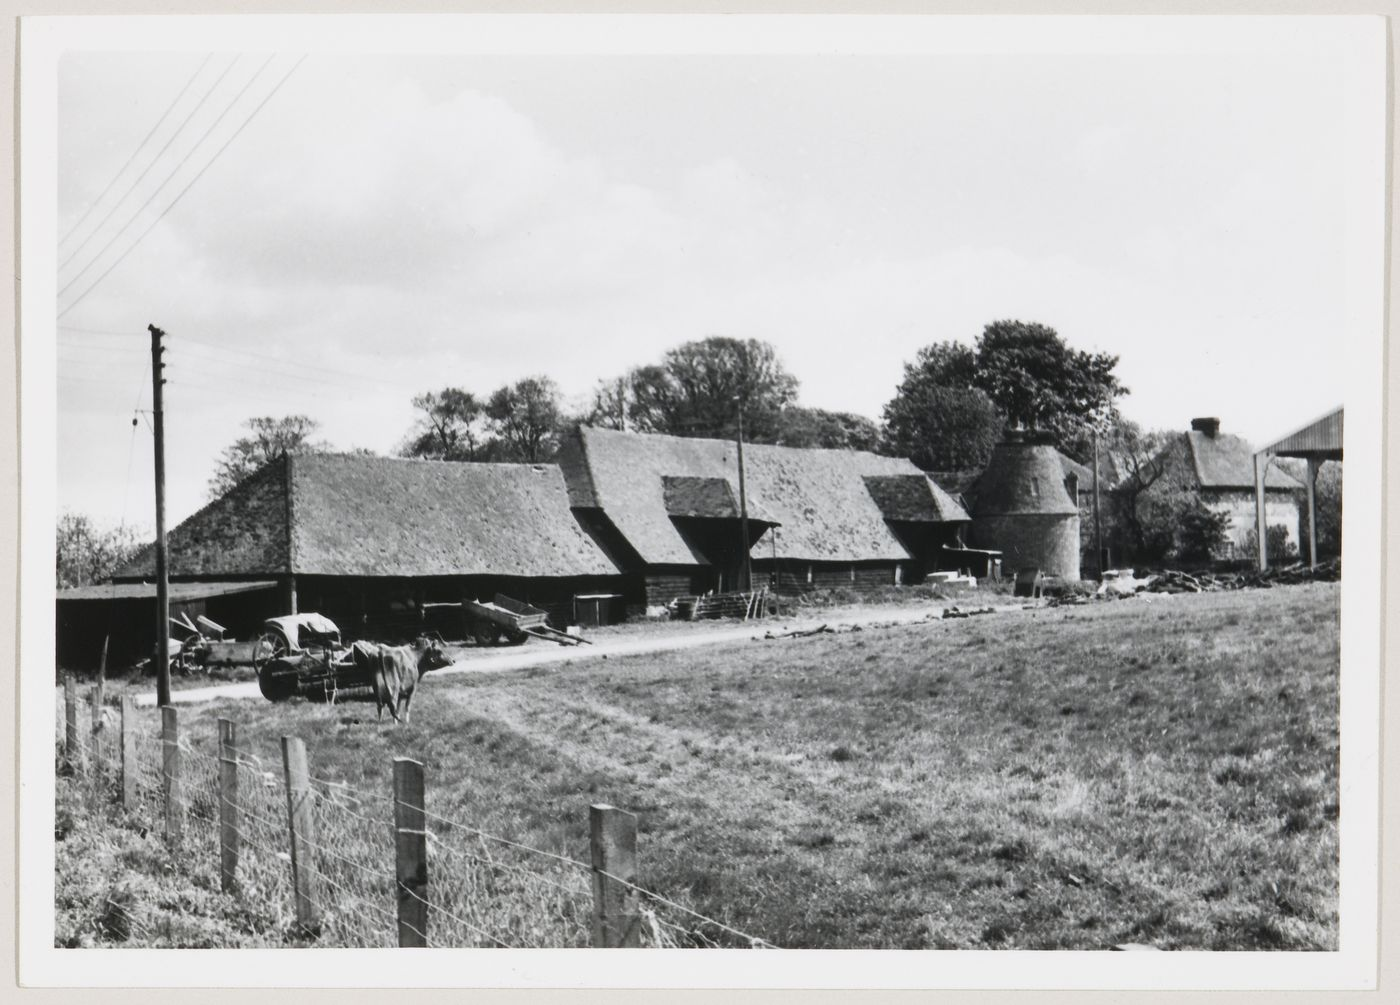 View of farm buildings and oast house, United Kingdom